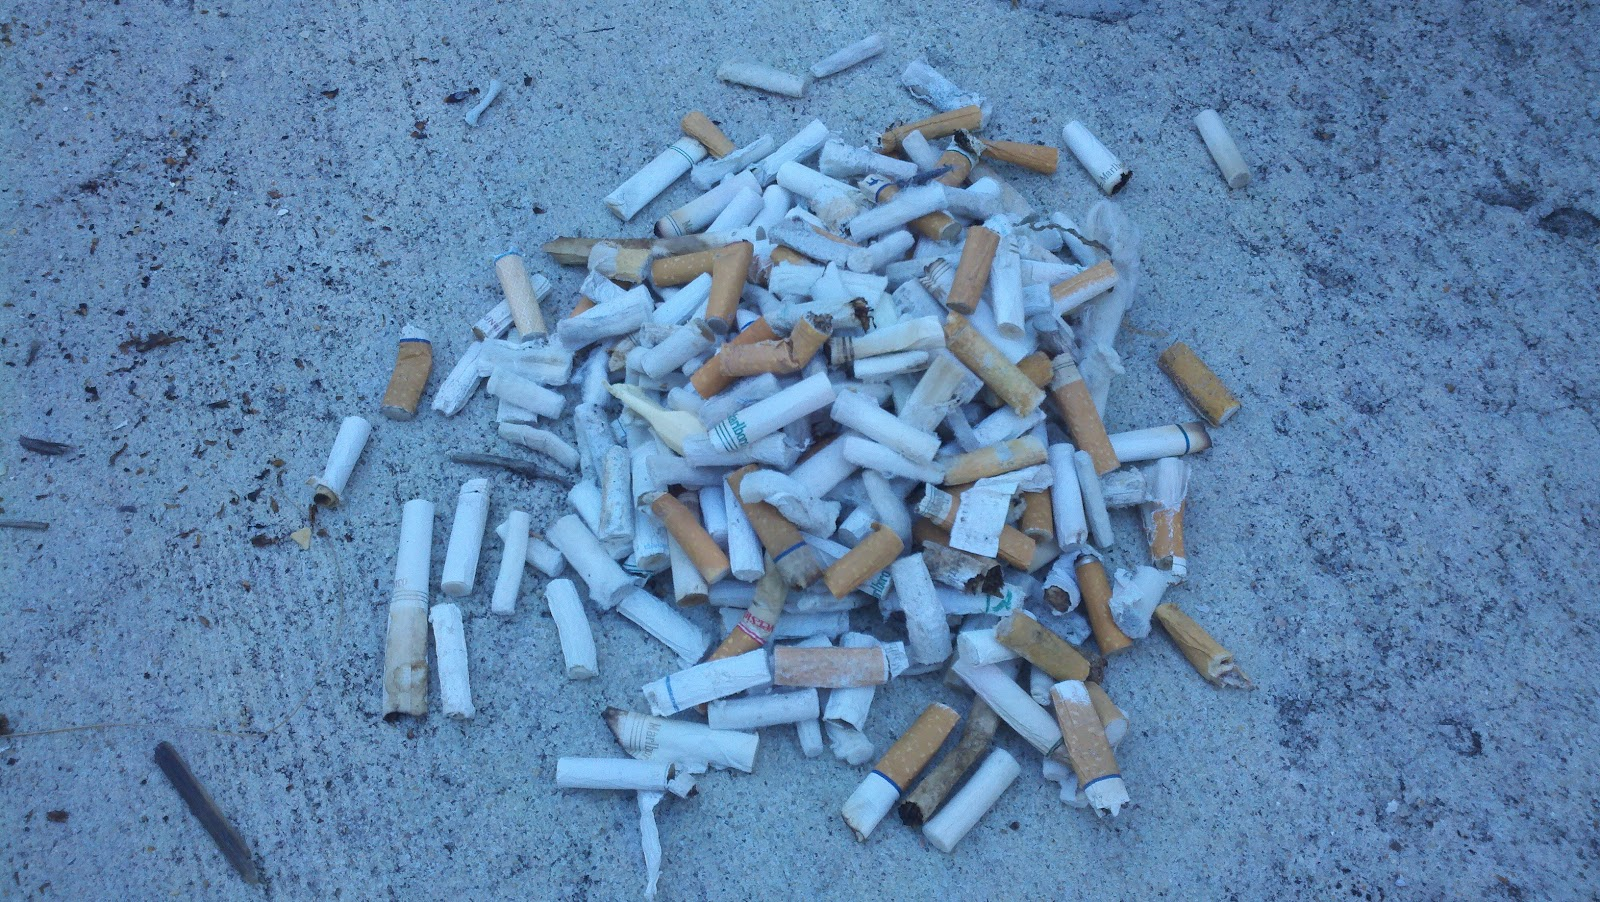 piles of cigarette butts on roads